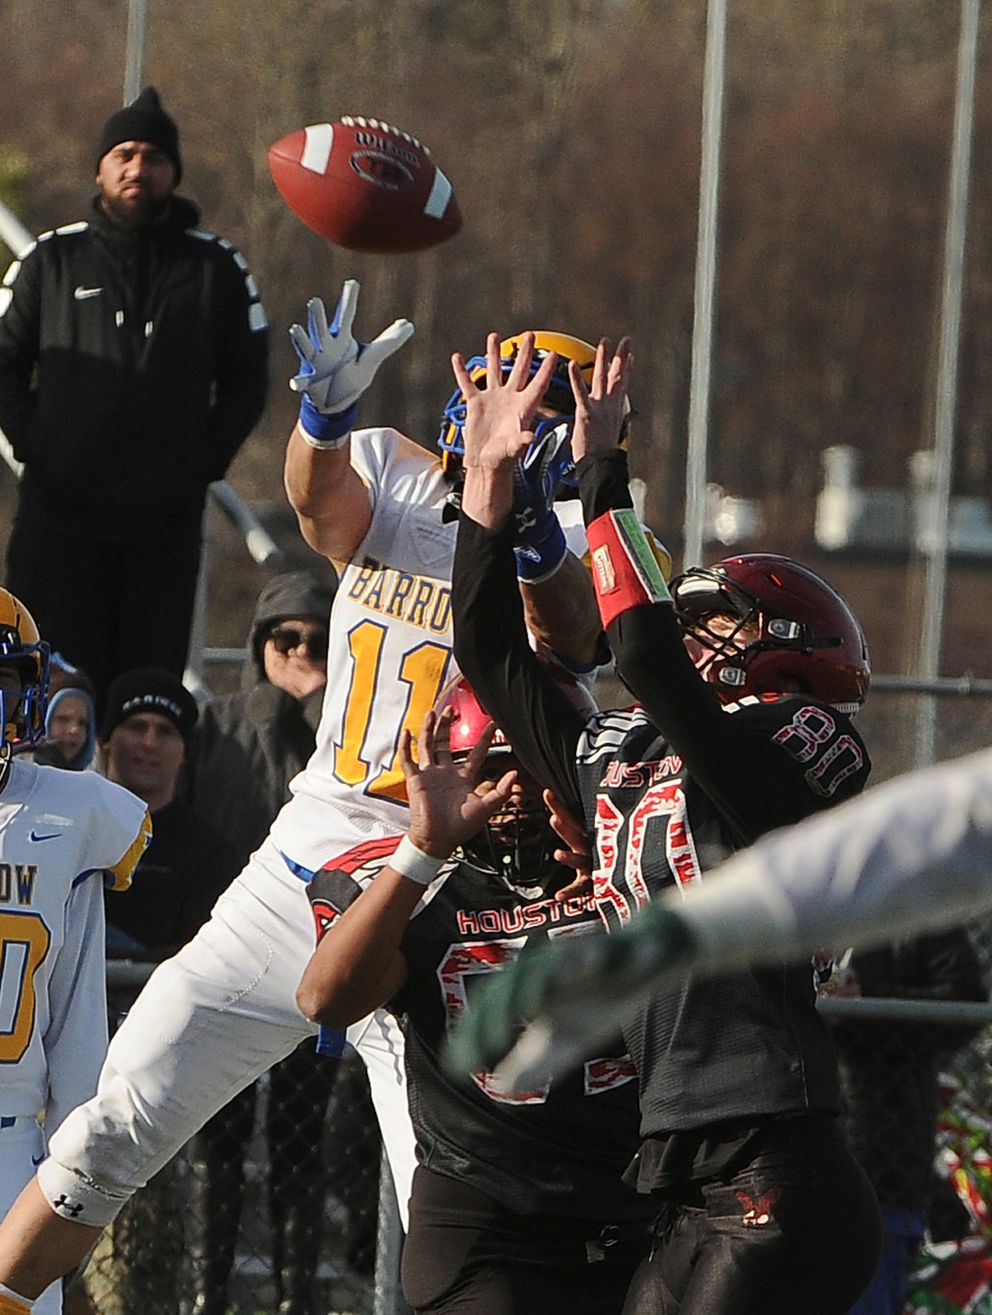 Ervin Felt, of Barrow, and Brain Fialelei and Gavin Mulhaney, of Houston, go up for a pass at Anchorage Football Stadium in Anchorage, AK on Saturday, October 19, 2019. Houston defeated Barrow 41-8 to win the Division III Alaska State Championship game. (Bob Hallinen photo)